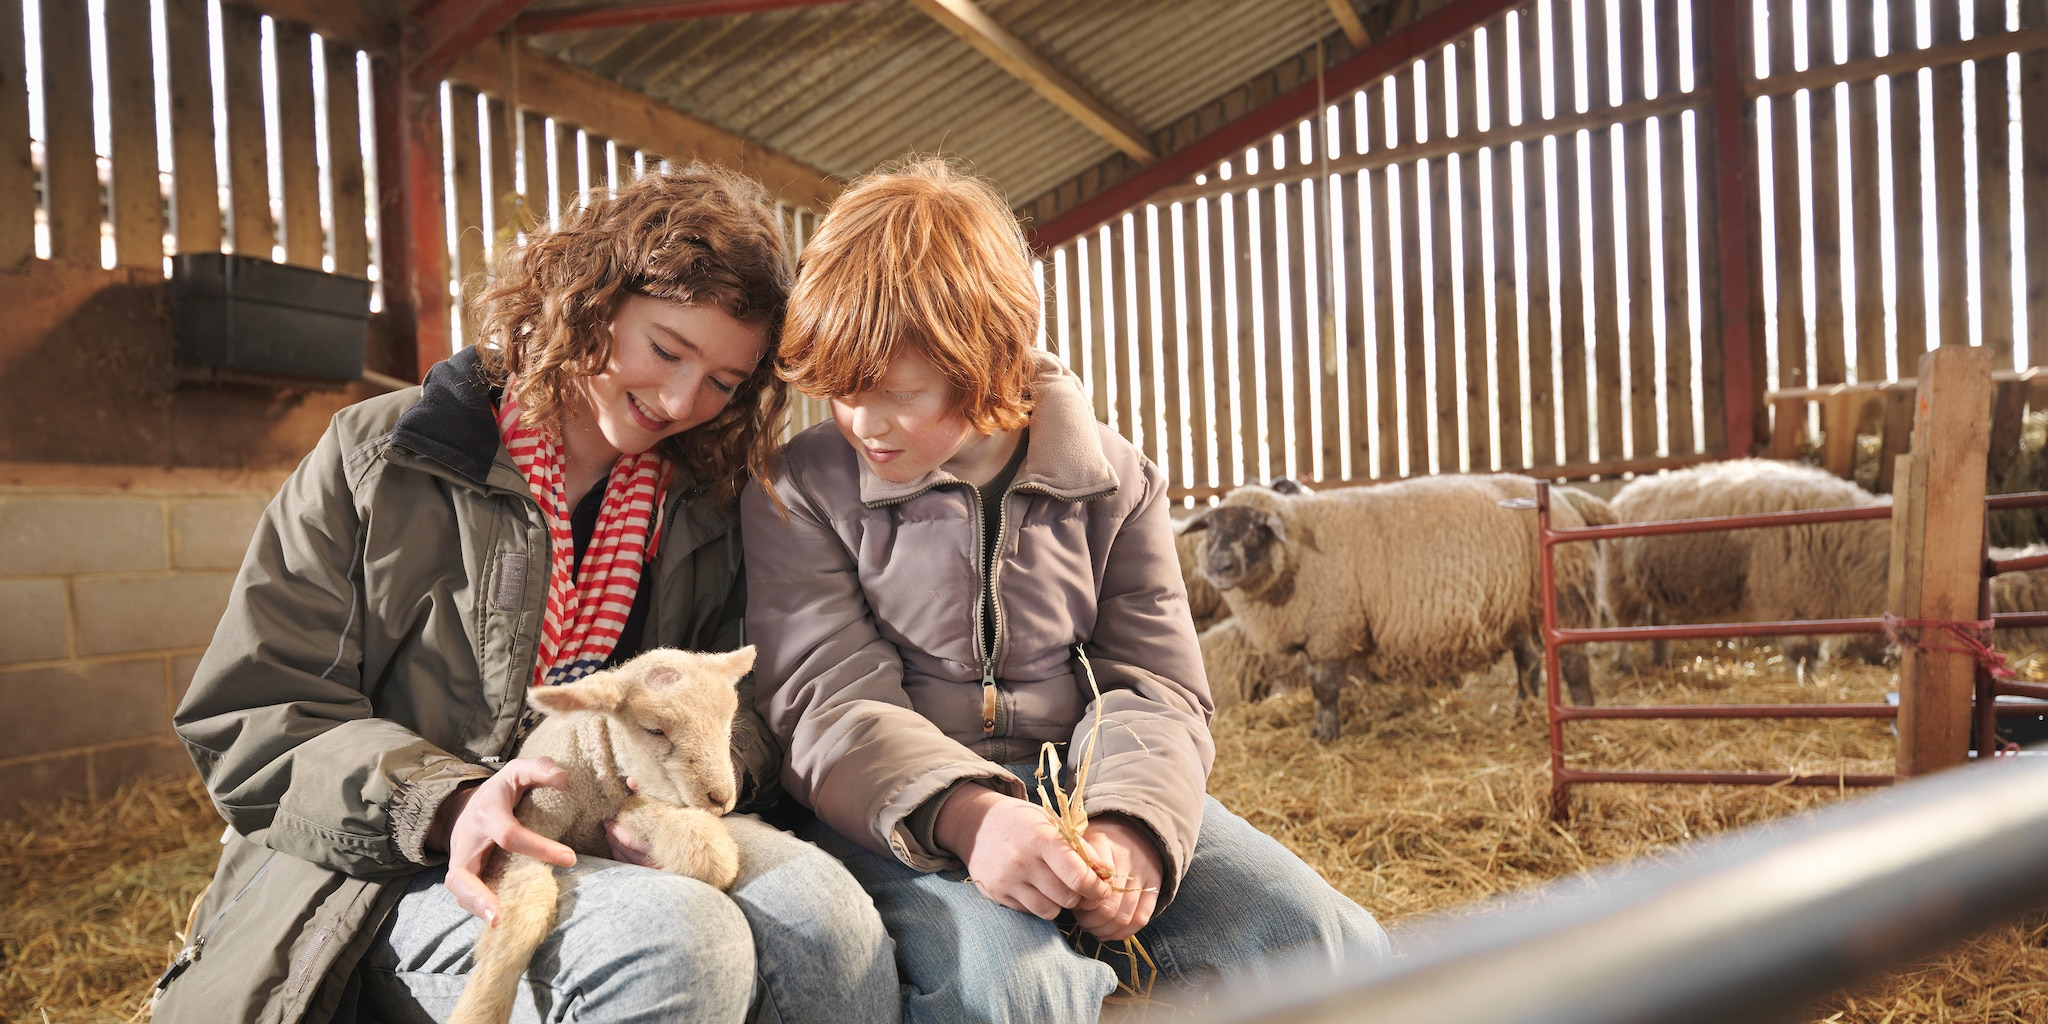 A boy and girl sit in a barn, playing with a lamb